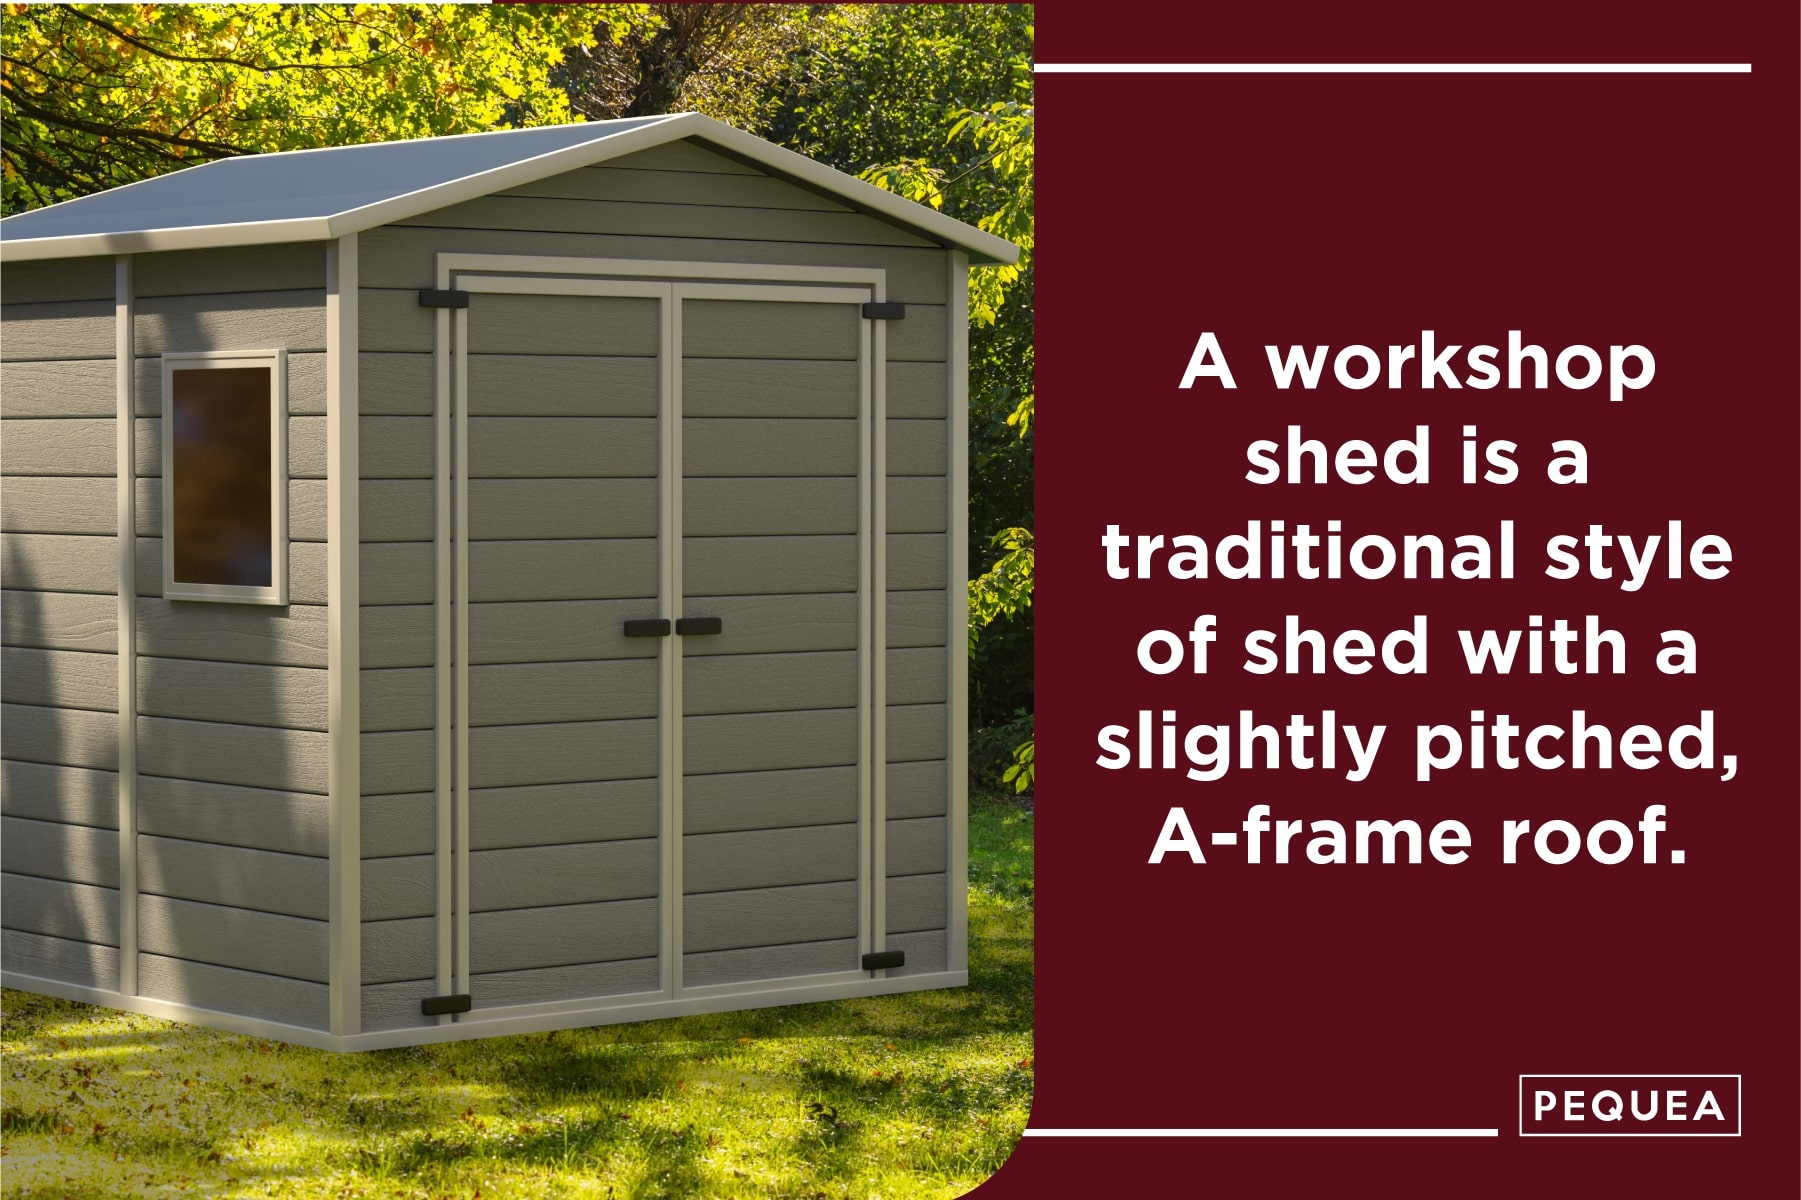 a workshop shed has a traditional a-frame roof